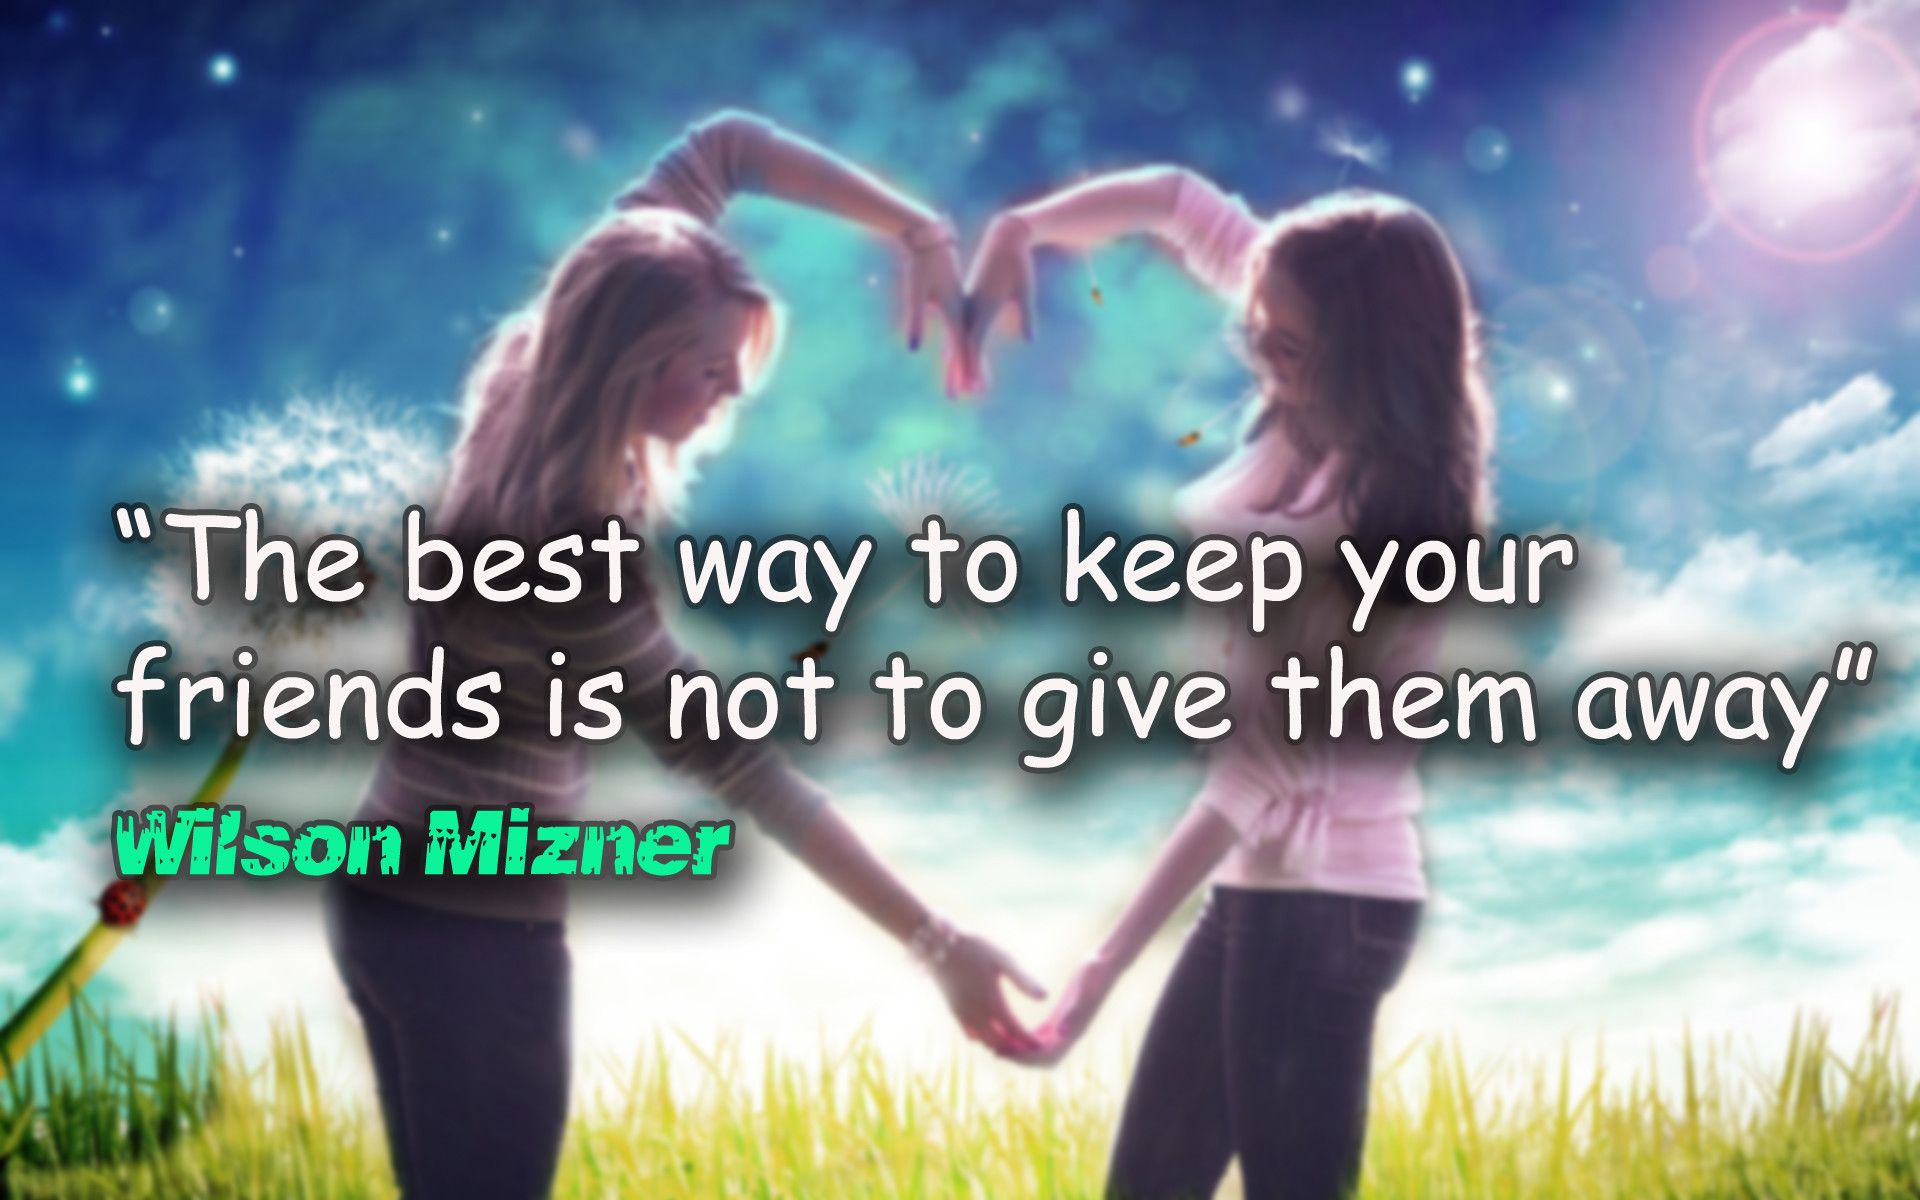 Cute Girly Wallpapers For Facebook 872575 Friendship Wallpaper Funny Quotes Wallpaper Cute Best Friend Quotes